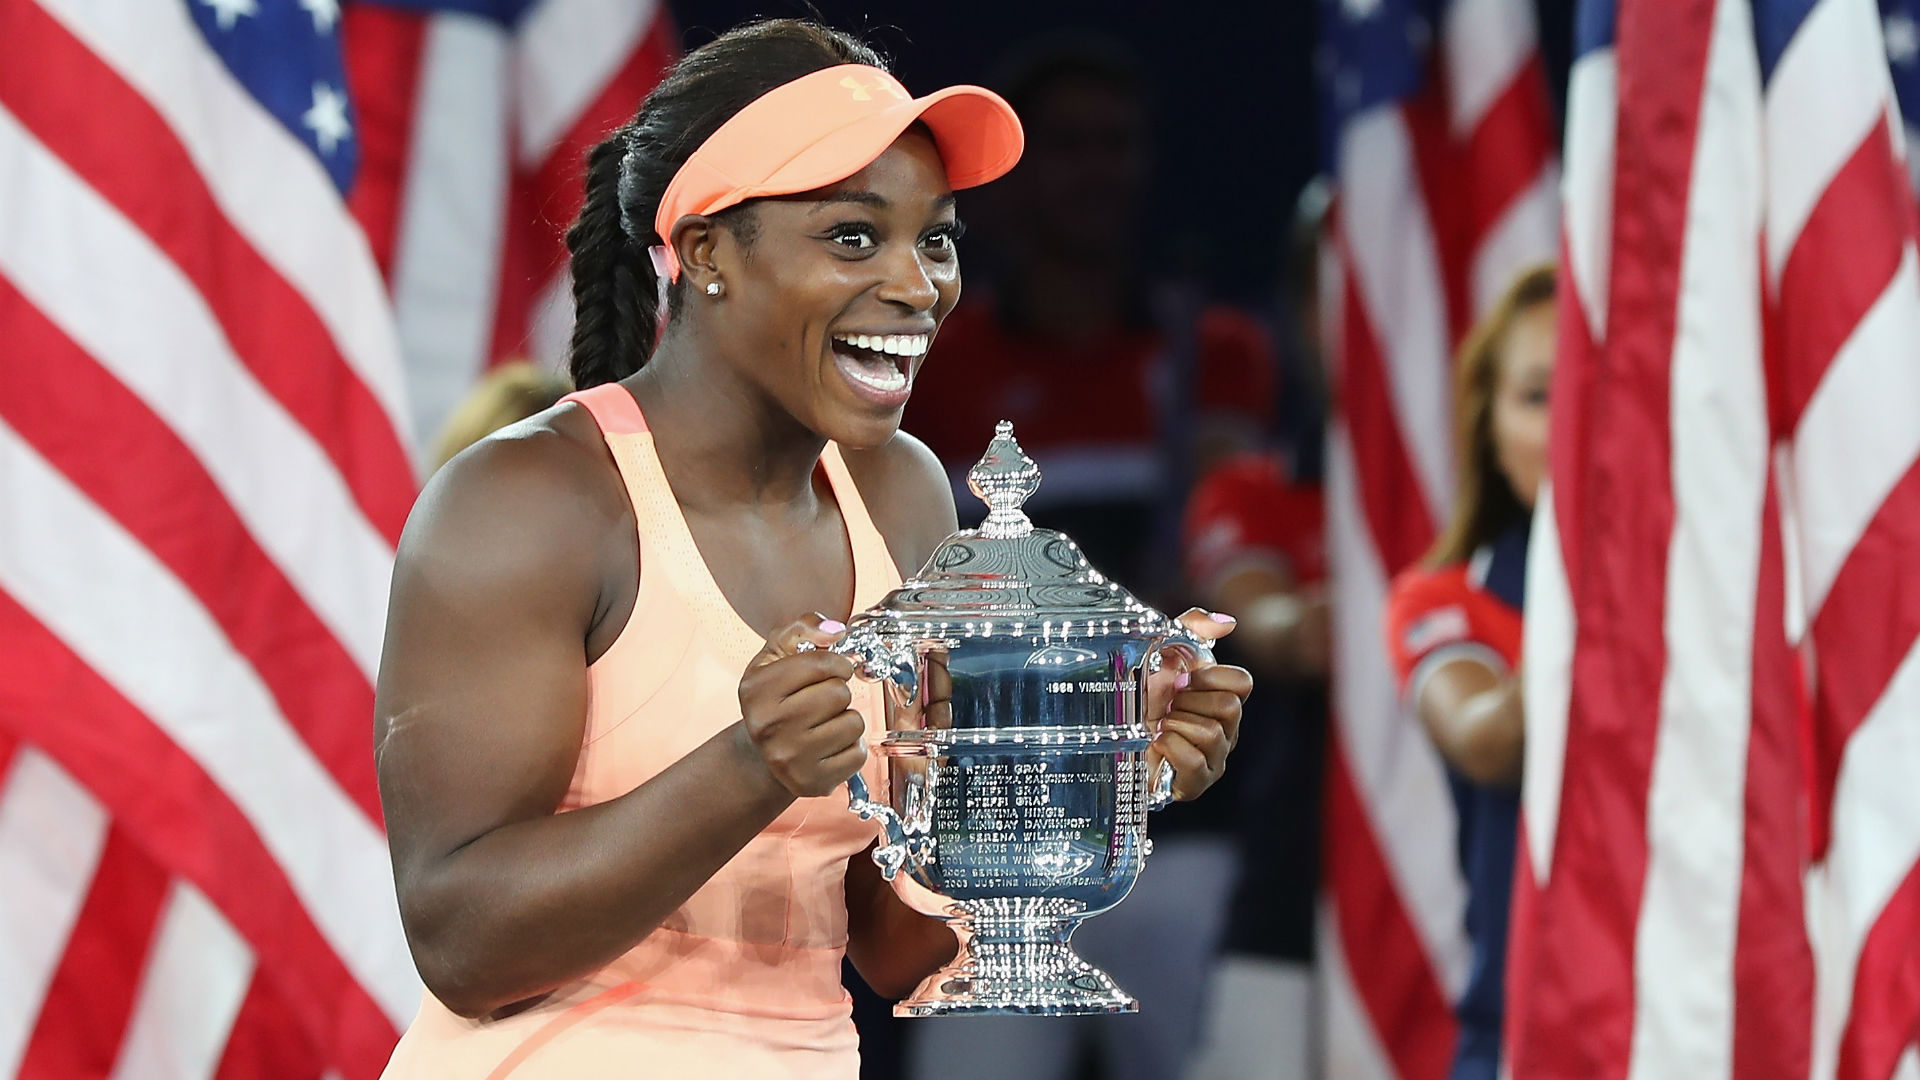 Sloane Stephens on U.S. Open win: 'I should just retire now, I'm never going to top this'